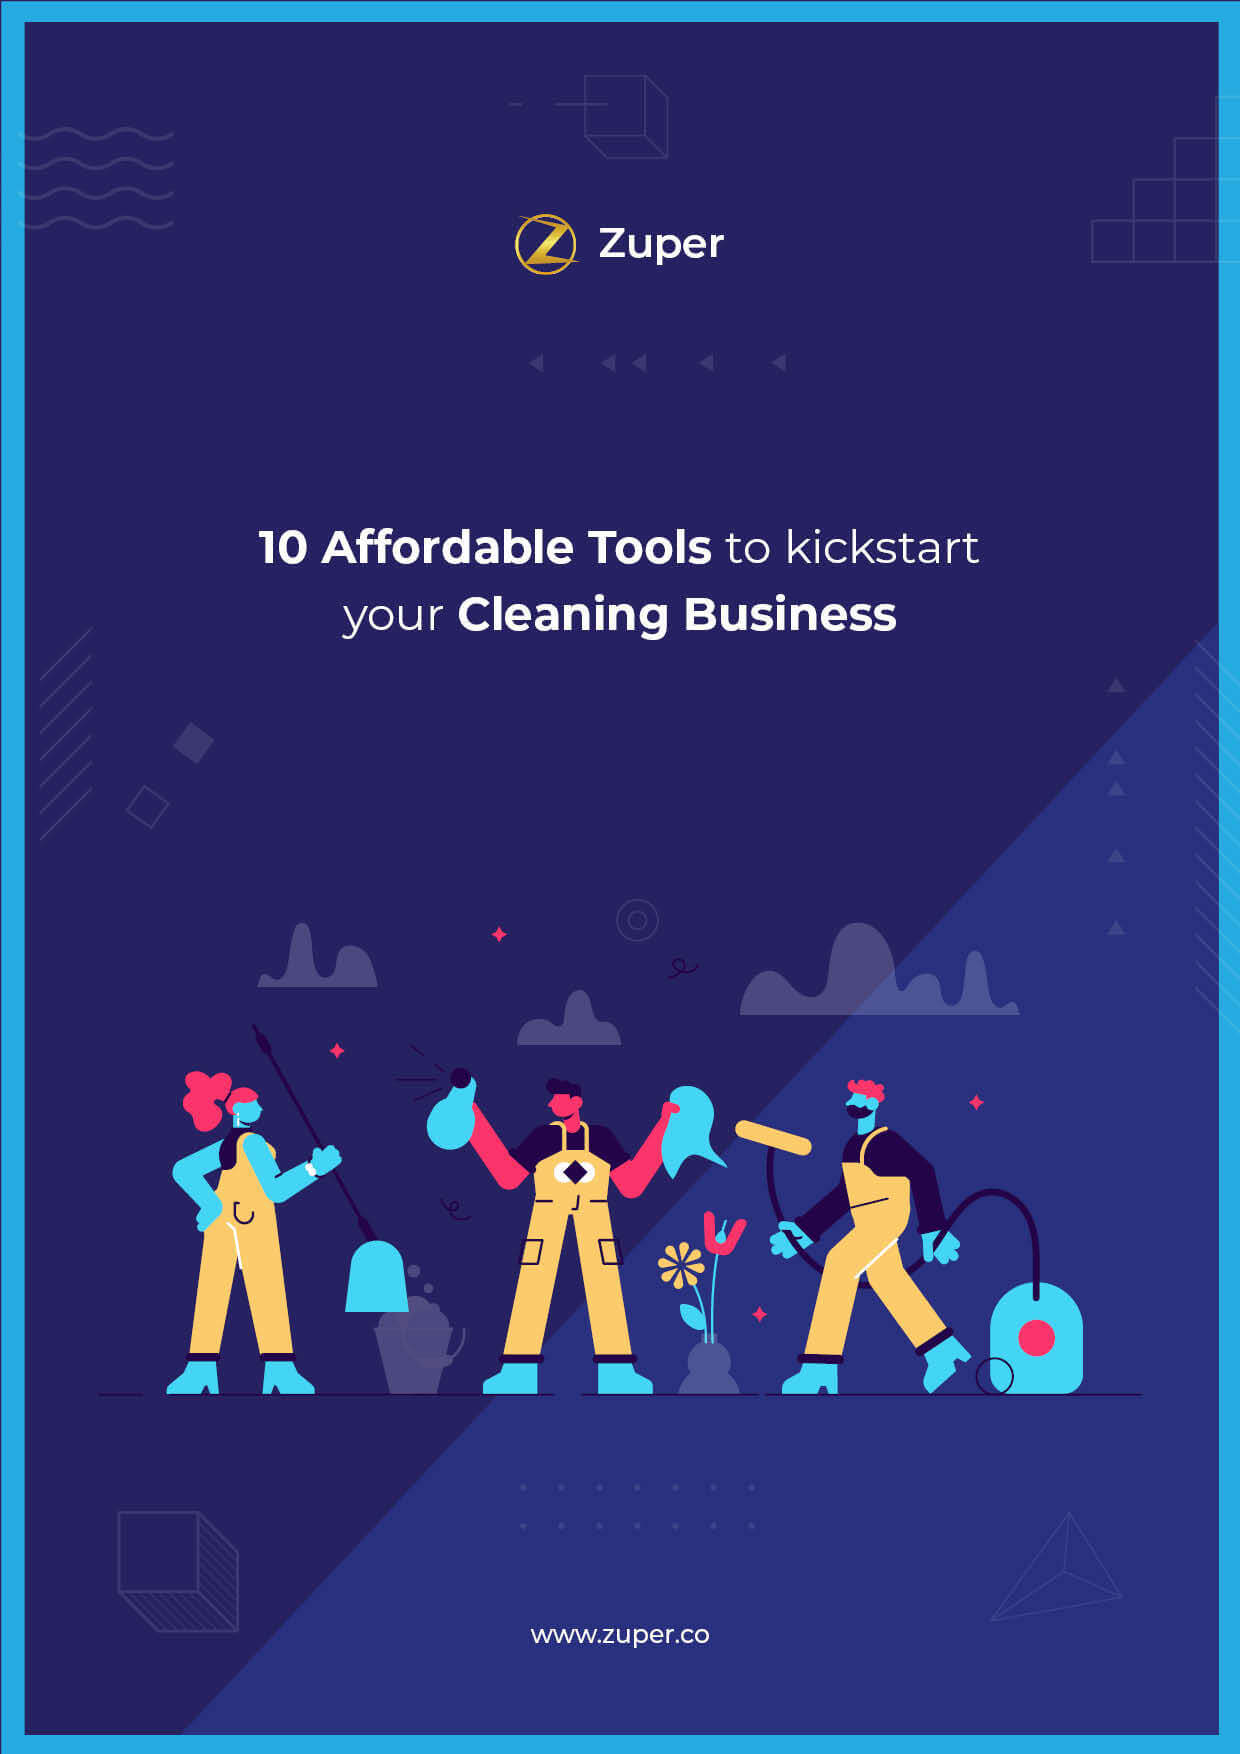 10 Affordable Tools to kickstart your Cleaning Business